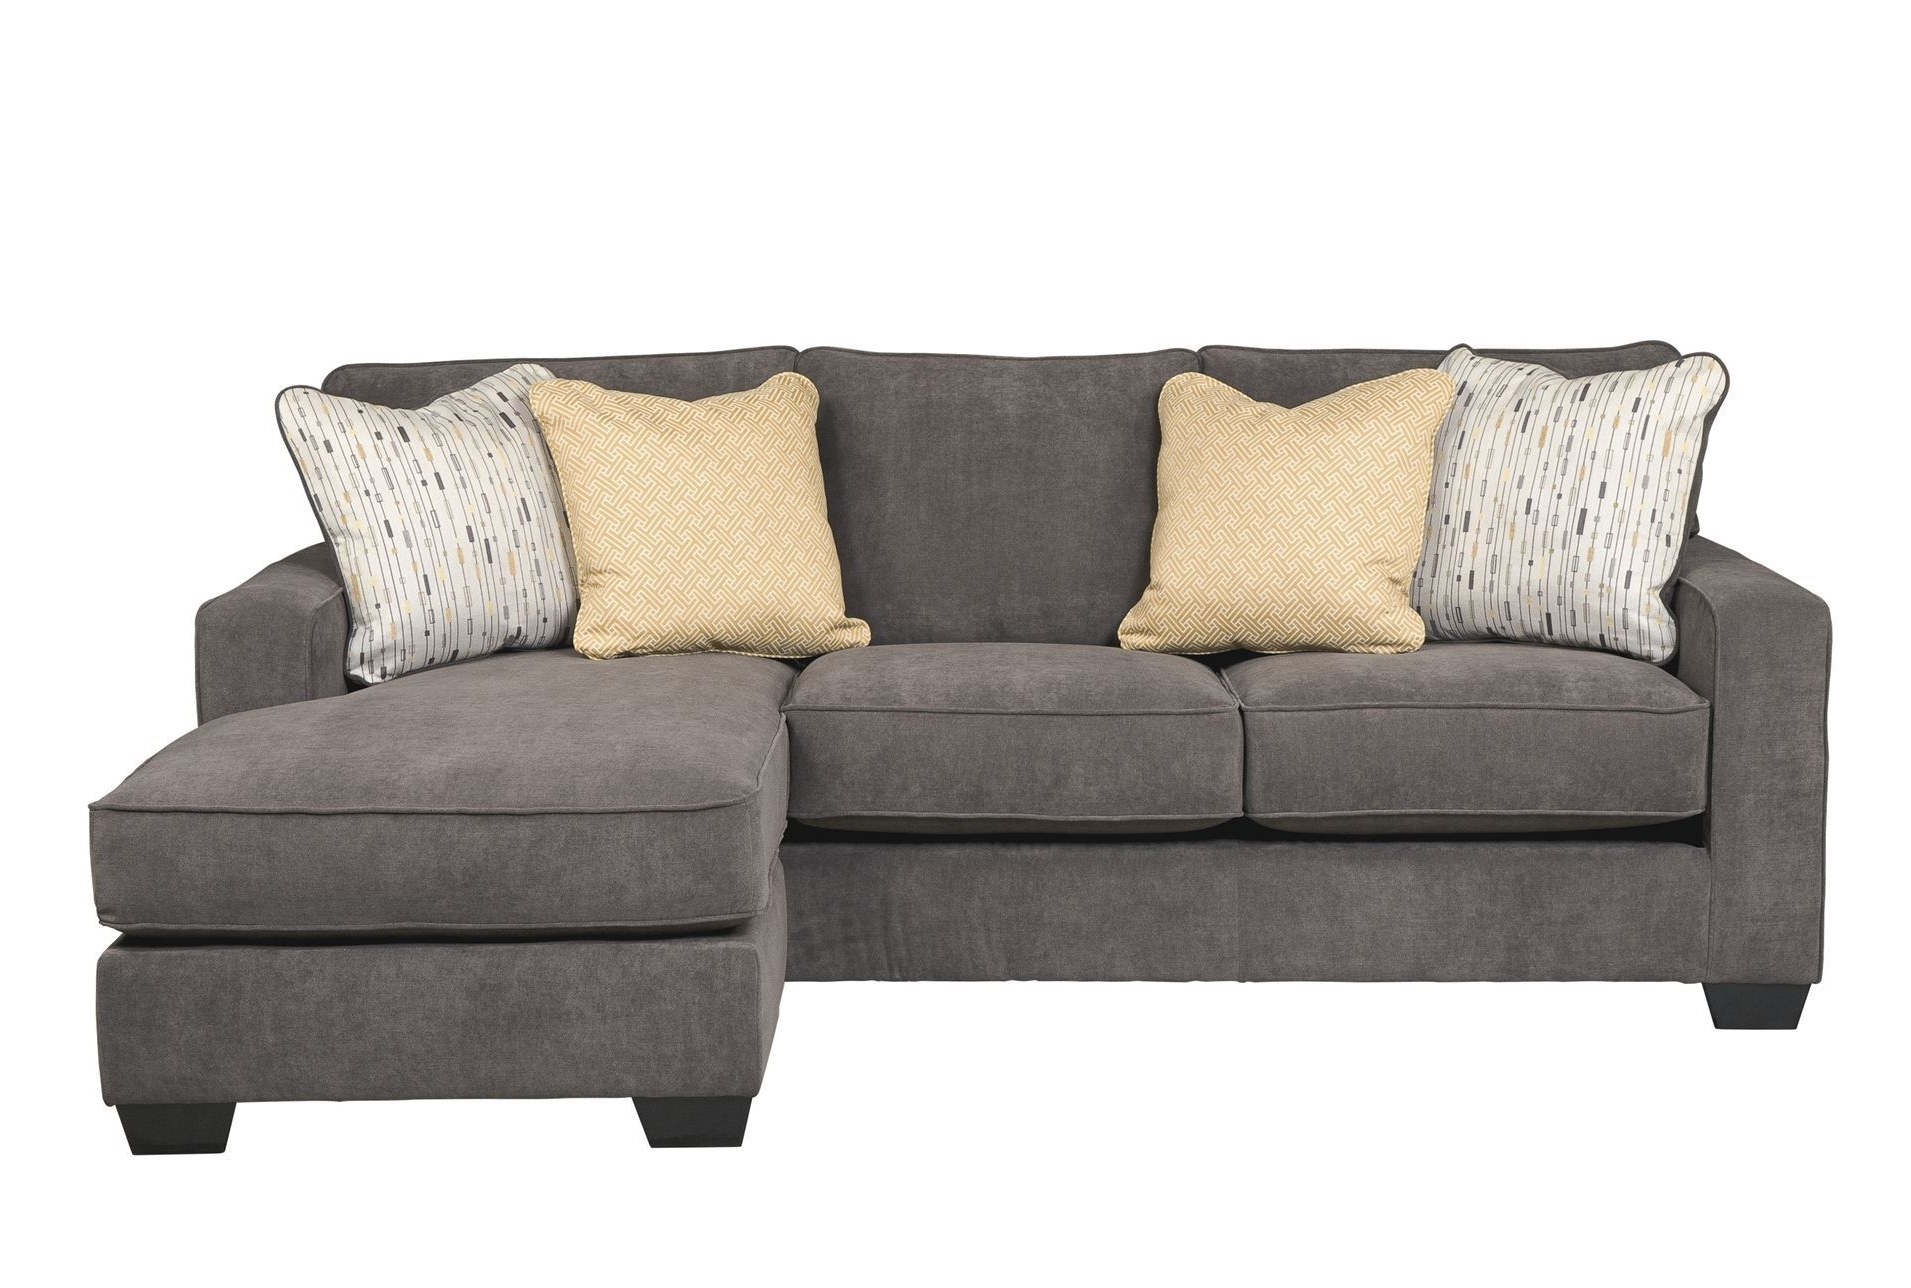 Apartment Size Sectional Sofa With Chaise Cheap Sectional Sofas Regarding Most Current Small Sofas With Chaise (View 3 of 15)